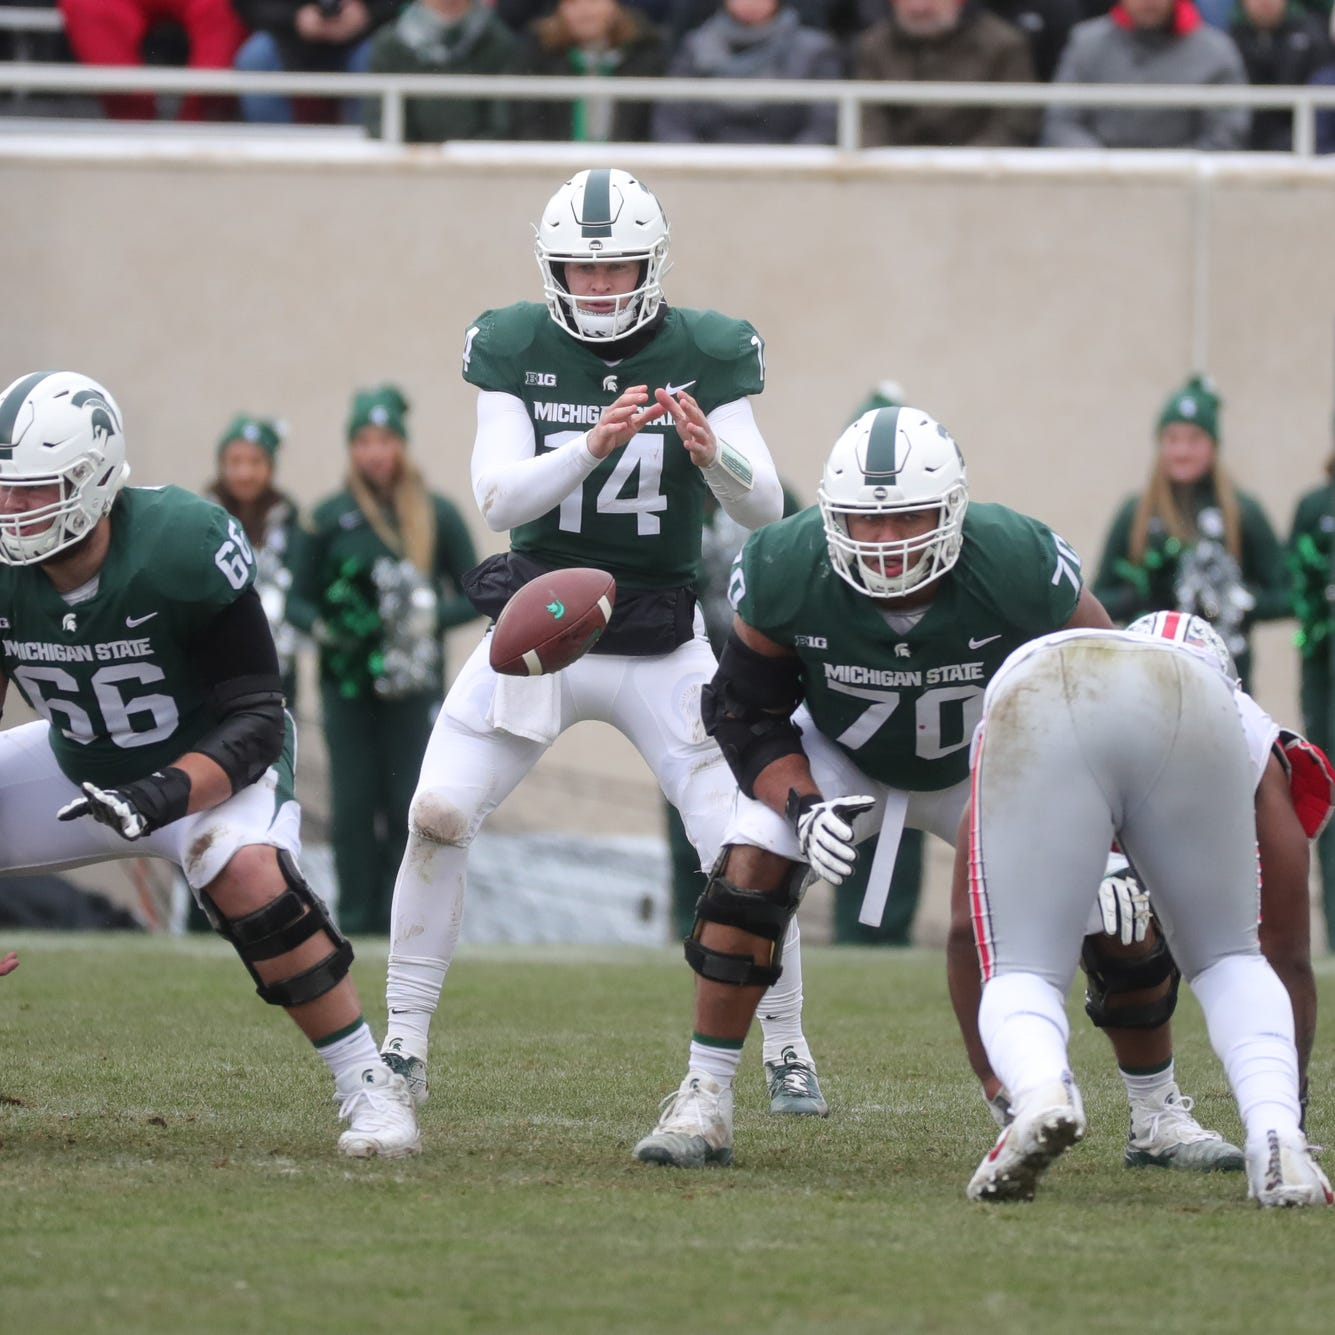 Michigan State football spring depth chart: Here's our prediction